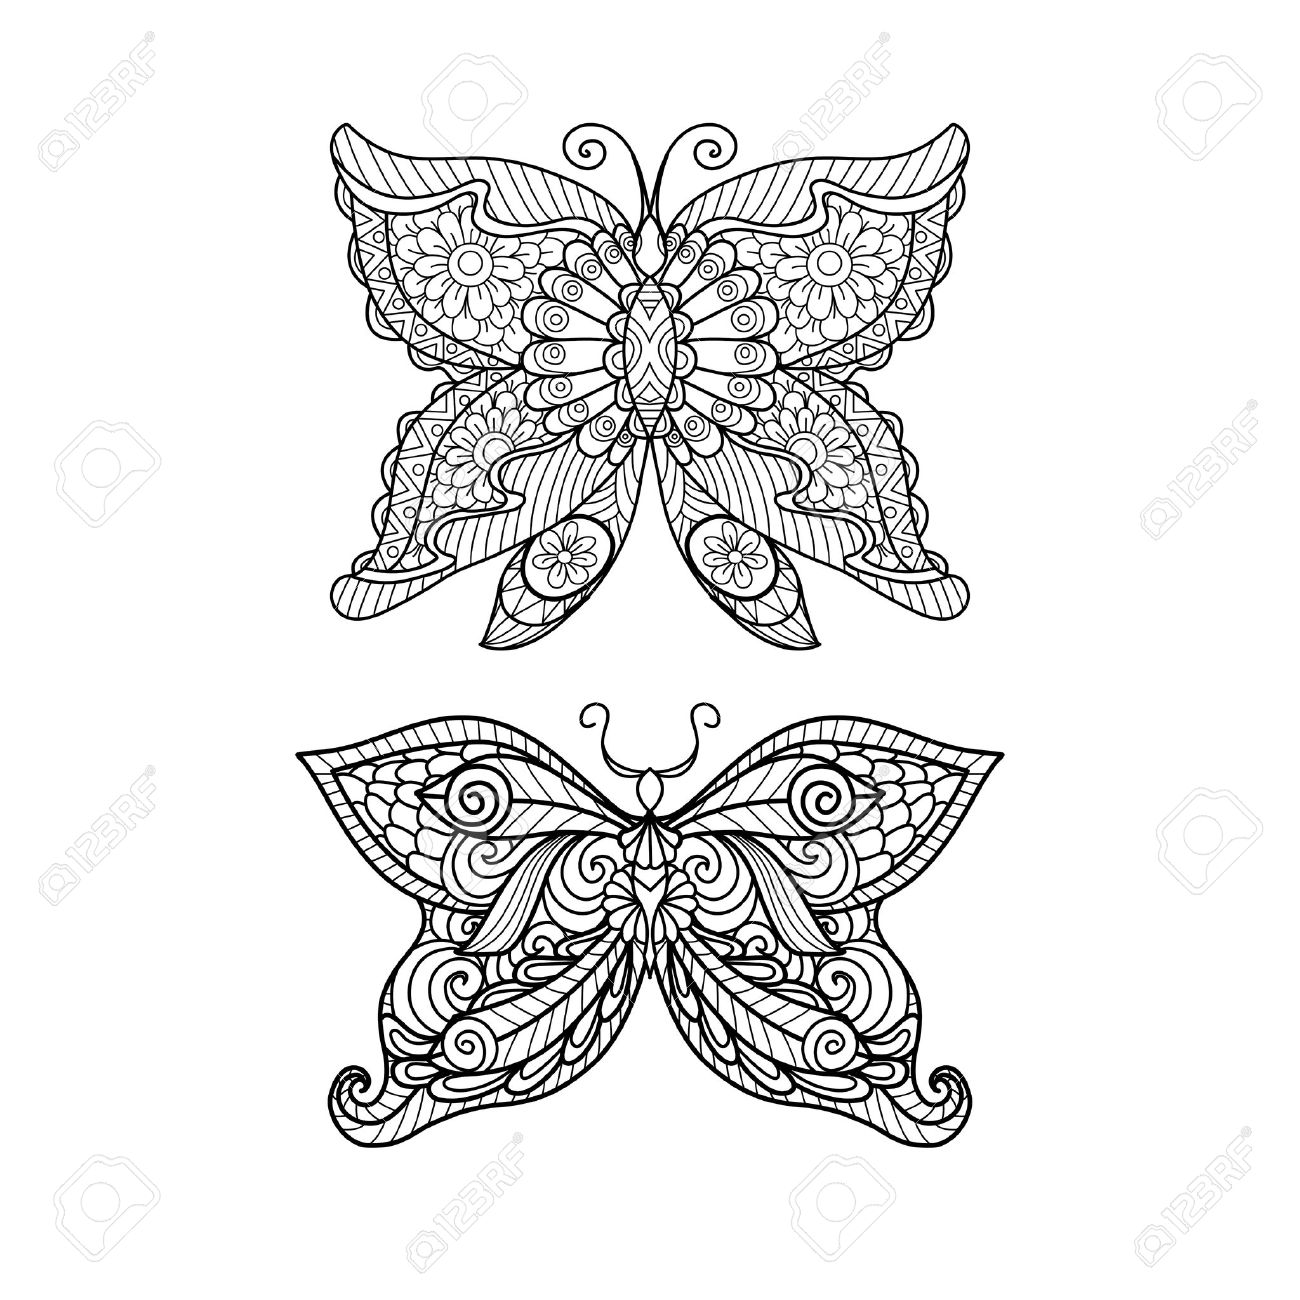 Shirt design book - Hand Drawn Butterfly Style For Coloring Book Shirt Design Or Tattoo Stock Vector 46617472